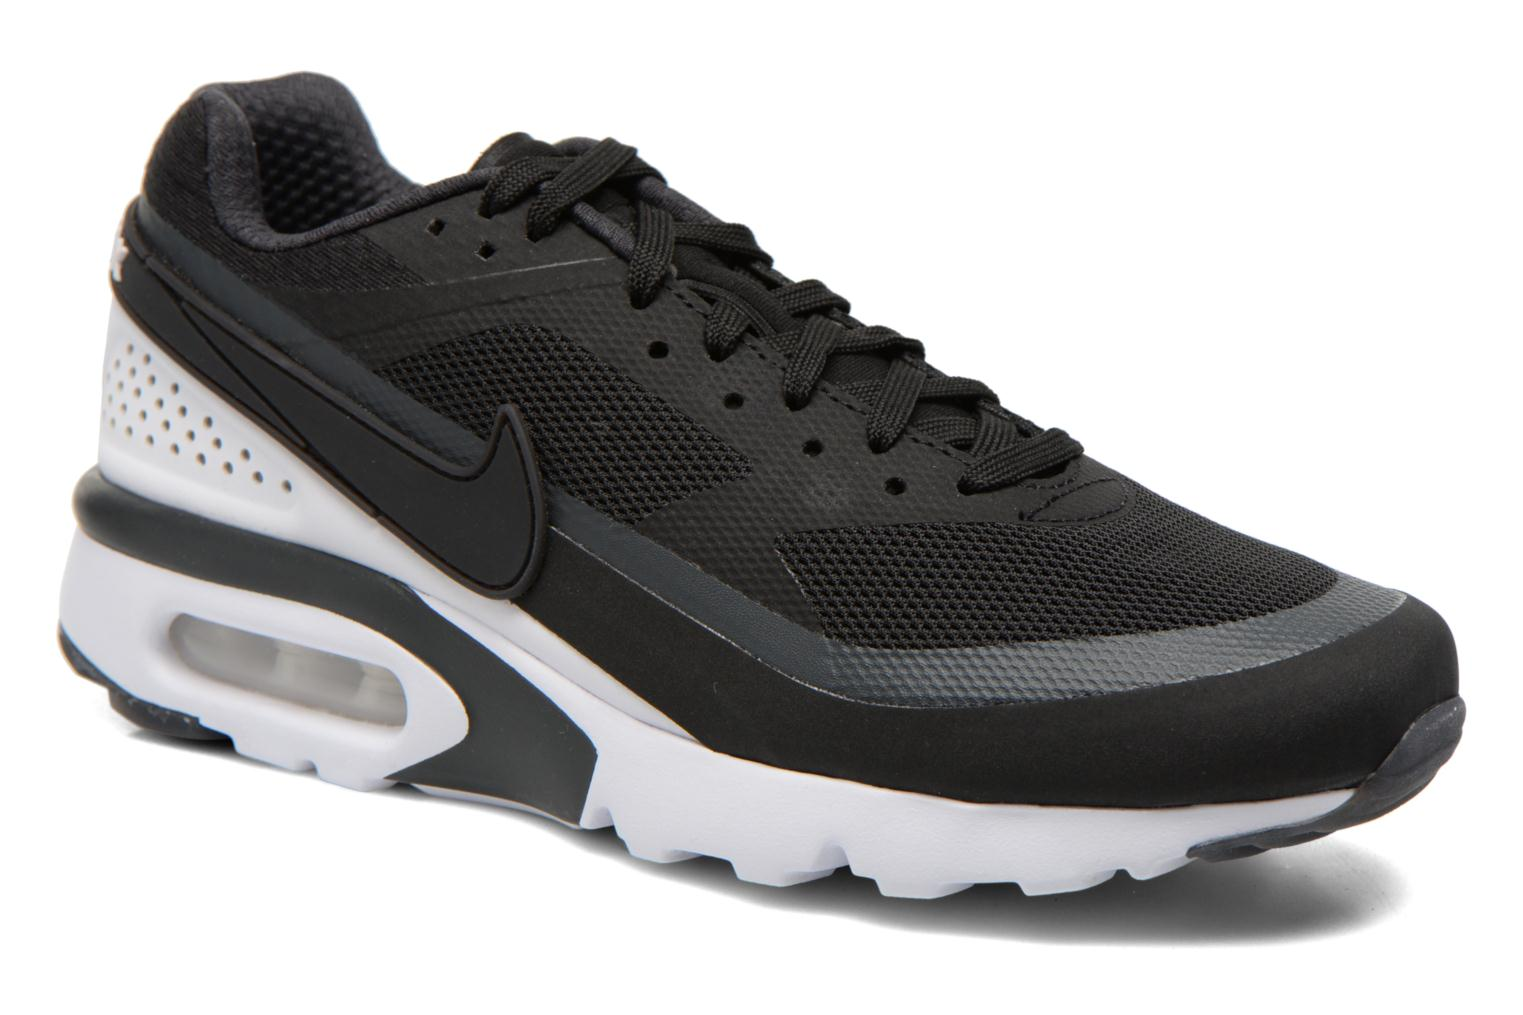 c6b54be90cd where can i buy black black anthracite nike nike air max bw ultra noir  d78f2 59c6e